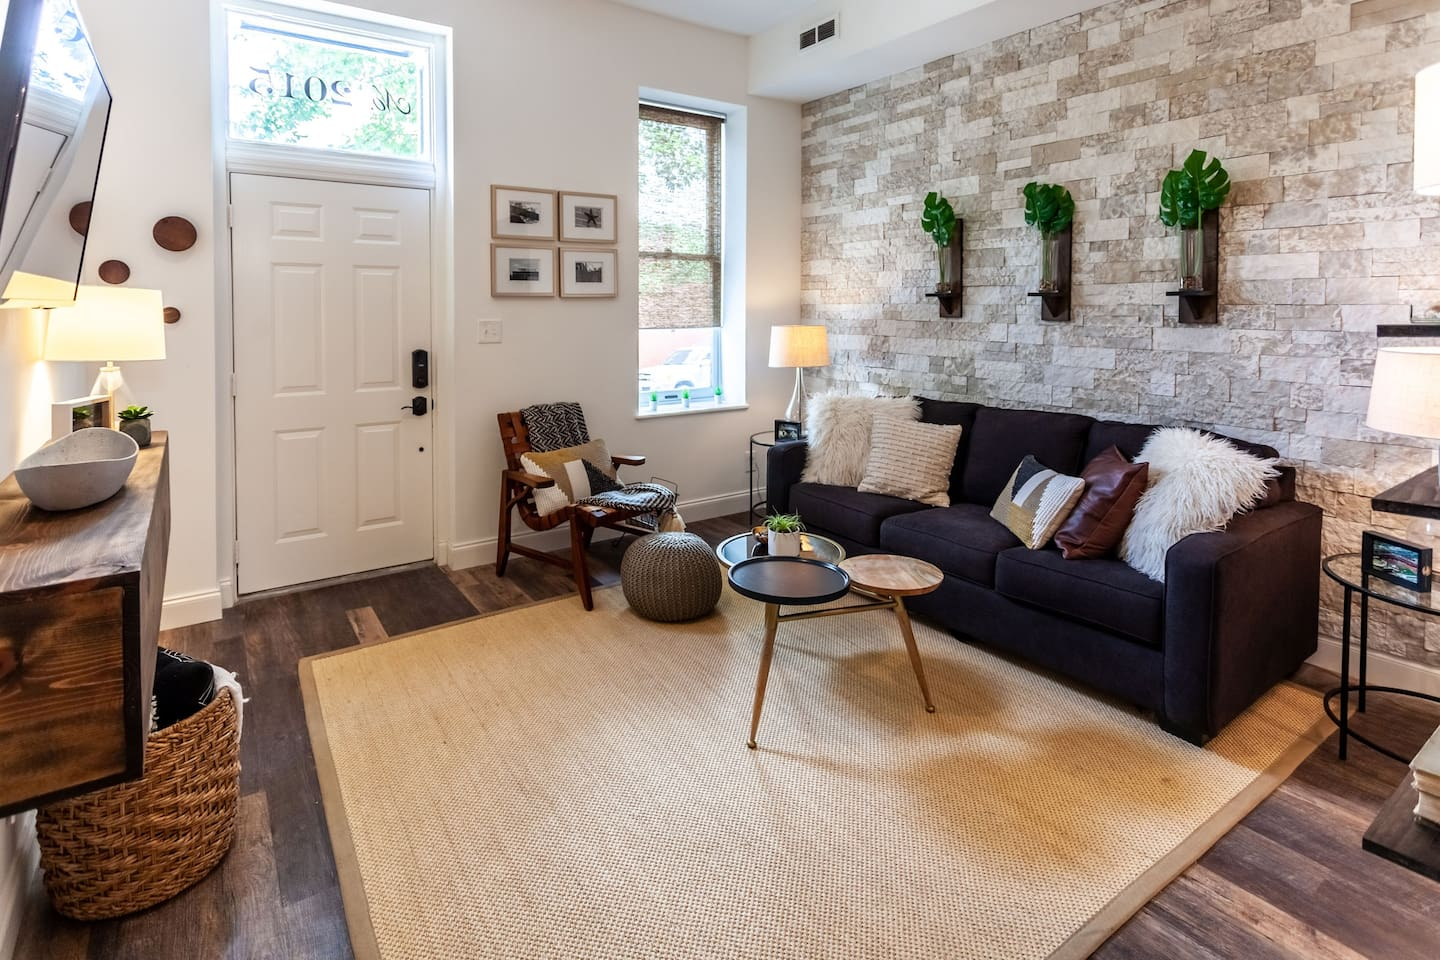 The front door is the center white door, this is the open concept living room as you walk in with stone wall, cable tv, and a relaxing living room.